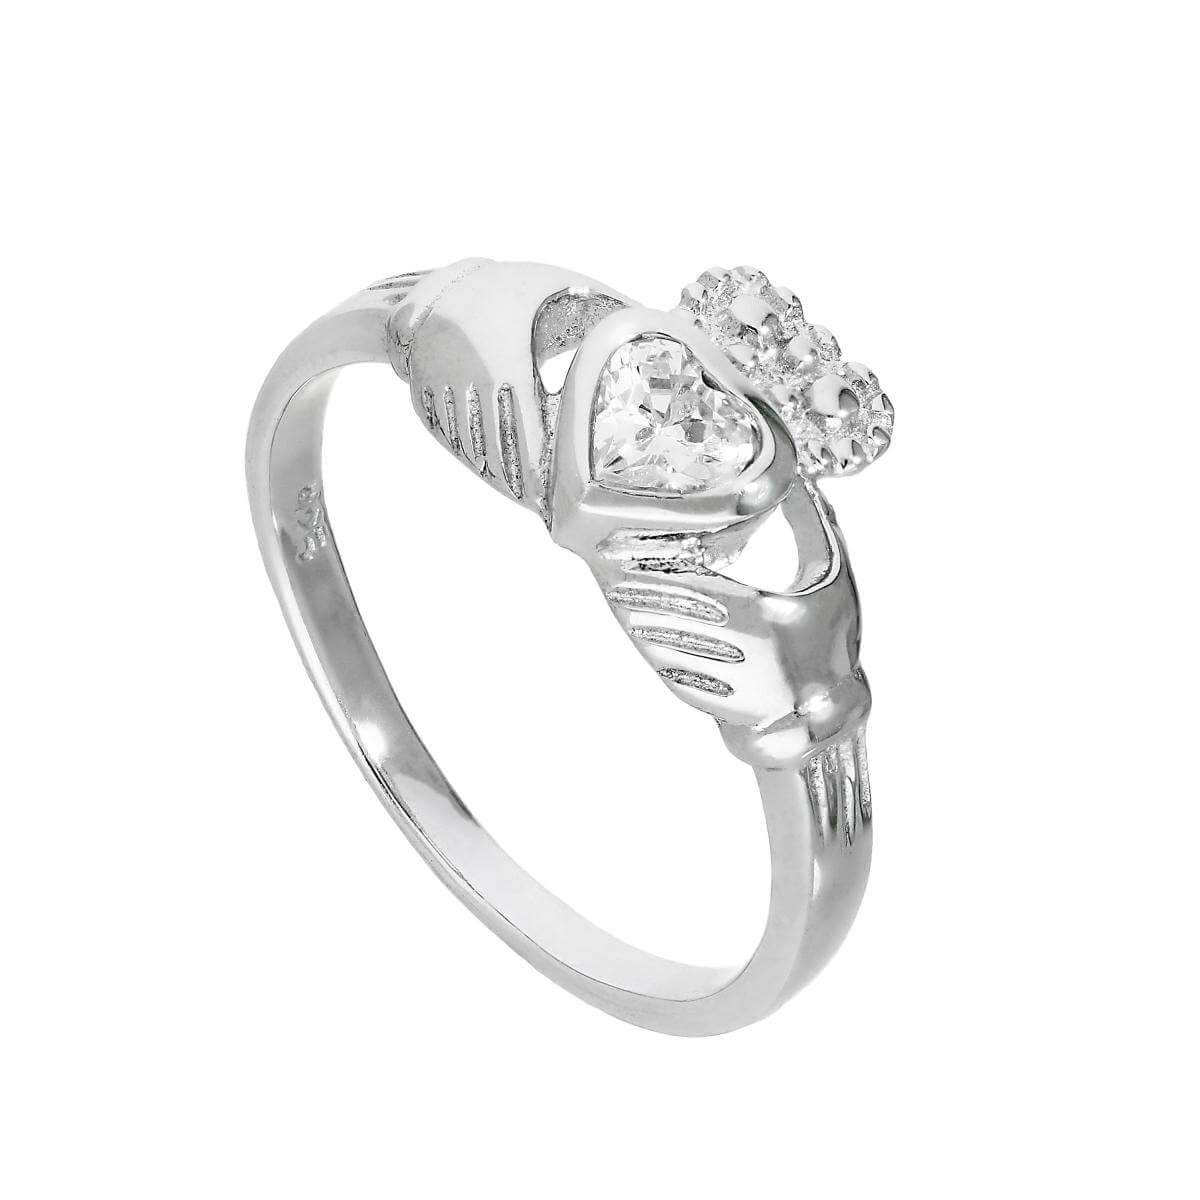 Sterling Silver & Clear CZ Crystal April Birthstone Claddagh Ring Sizes I - U